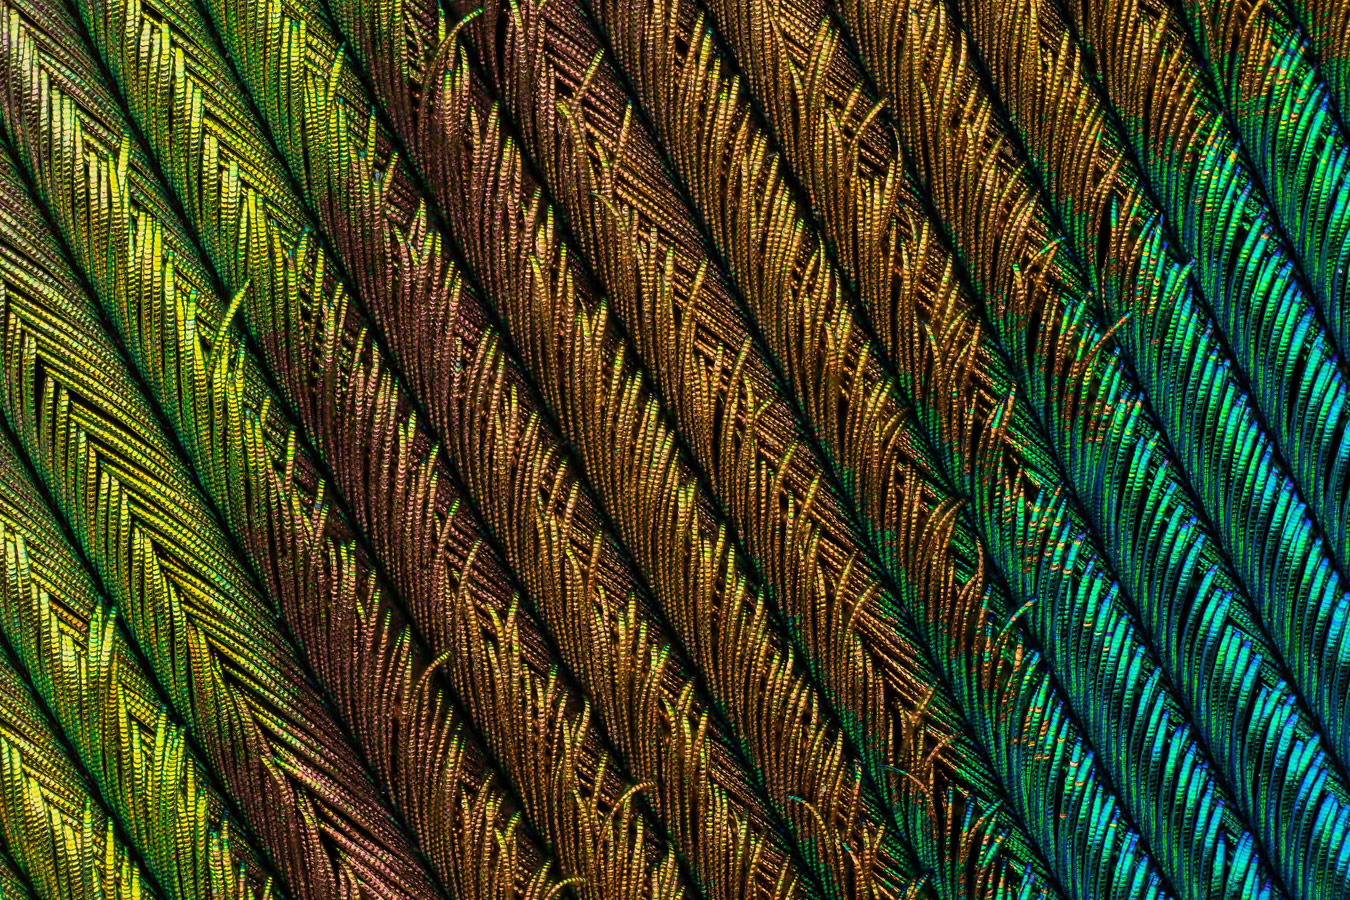 Peacock feather section, © Can Tunçer, İzmir, Turkey, 4th Place, Nikon's Small World - Photomicrography Competition